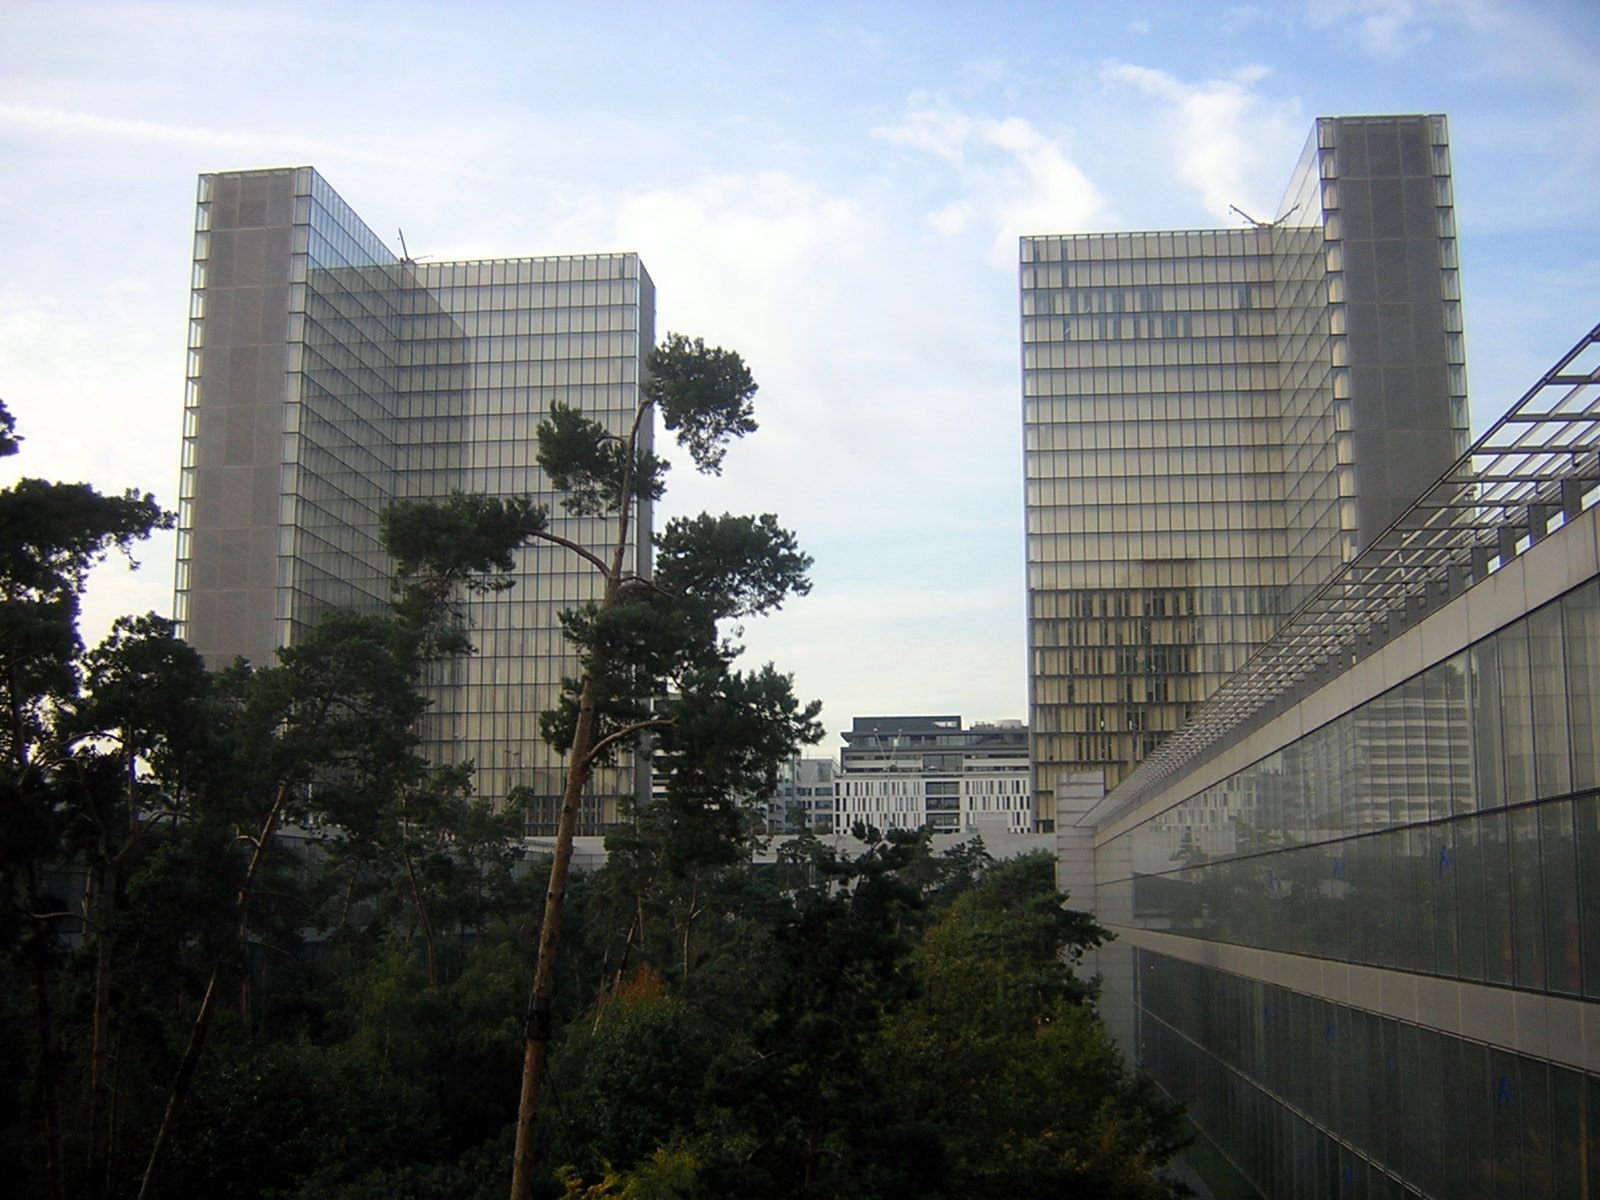 Bibliothéque nationale de France